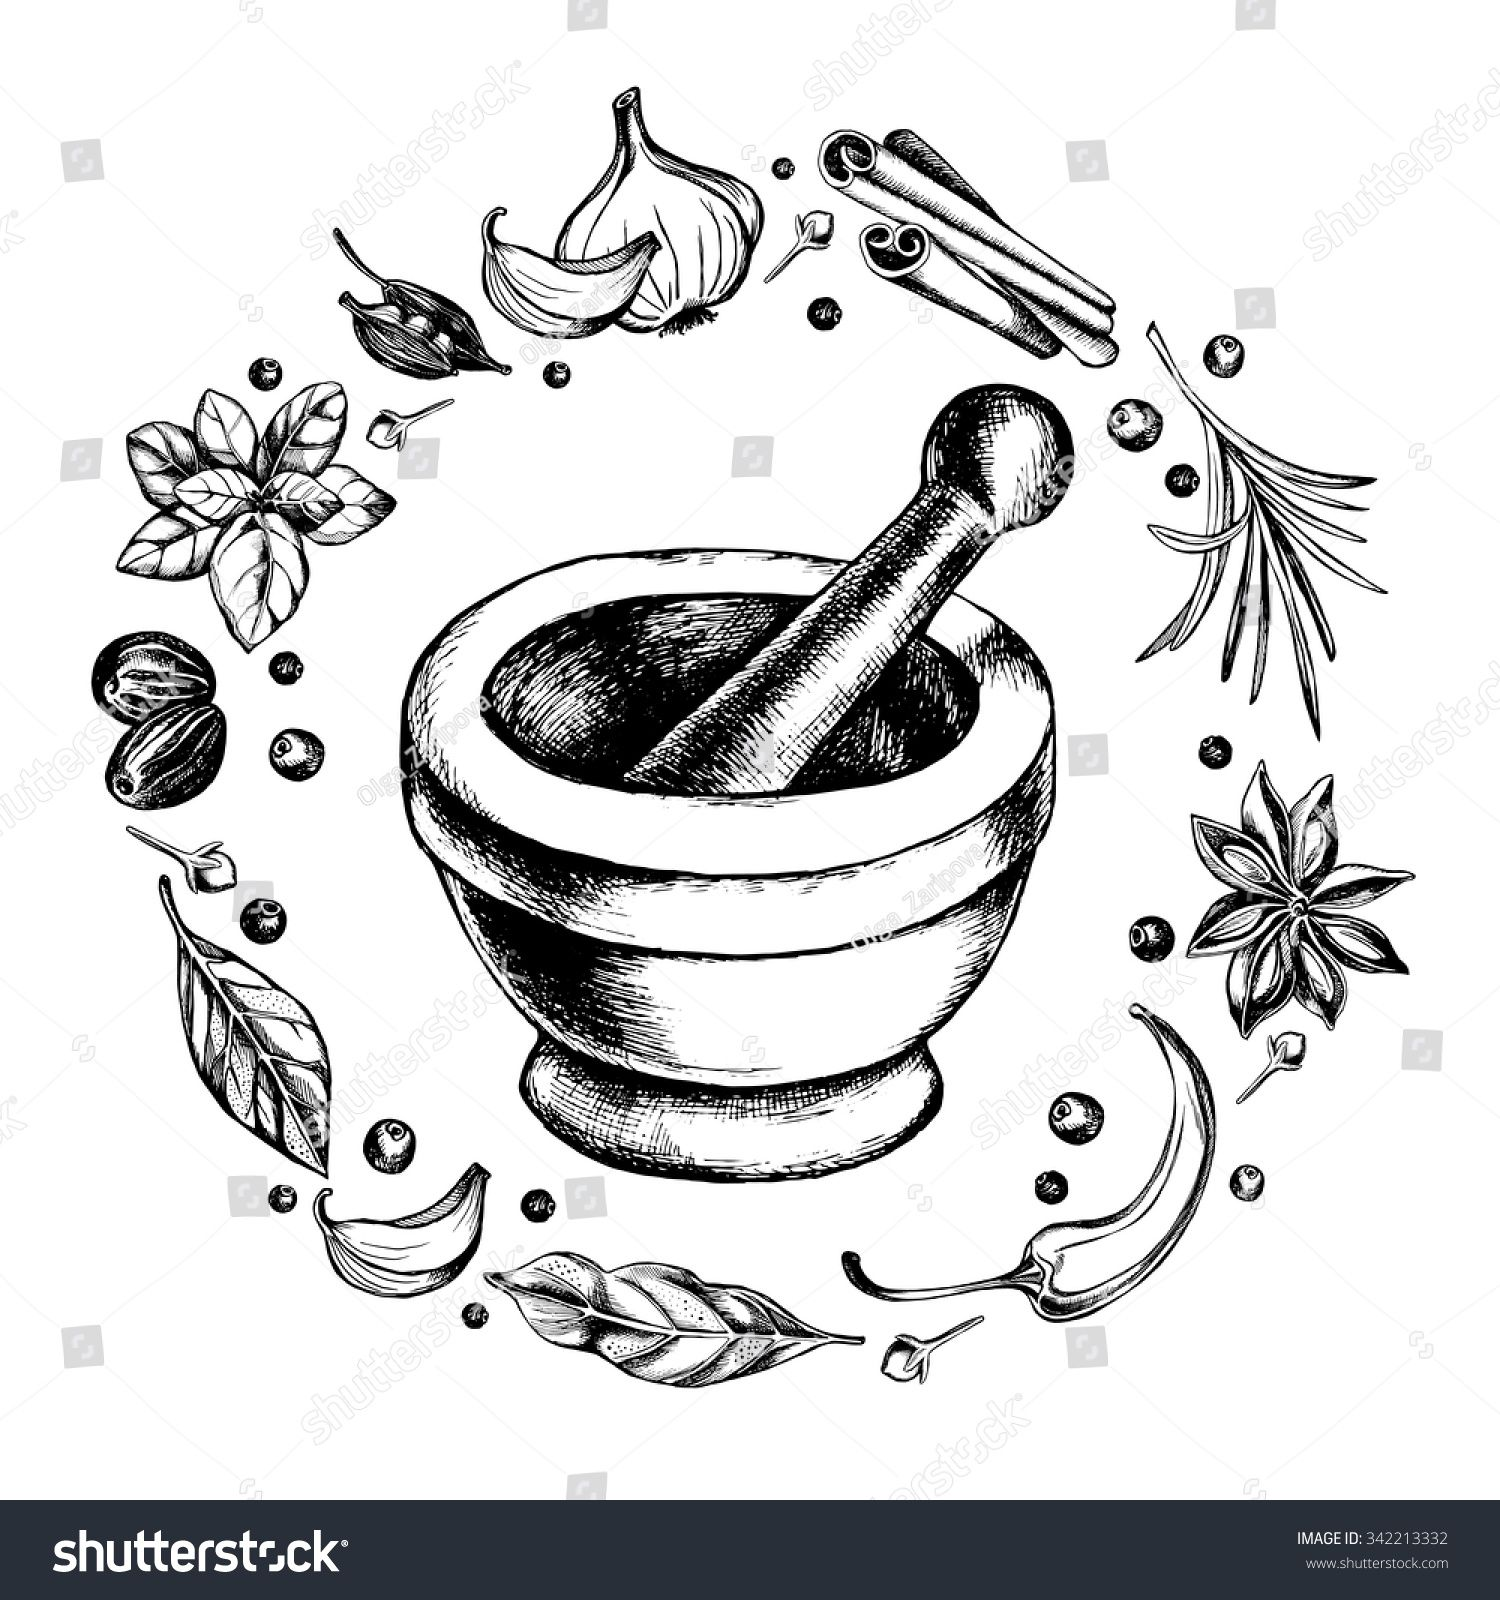 image freeuse library With herbs black white. Mortar and pestle clipart vintage medical.